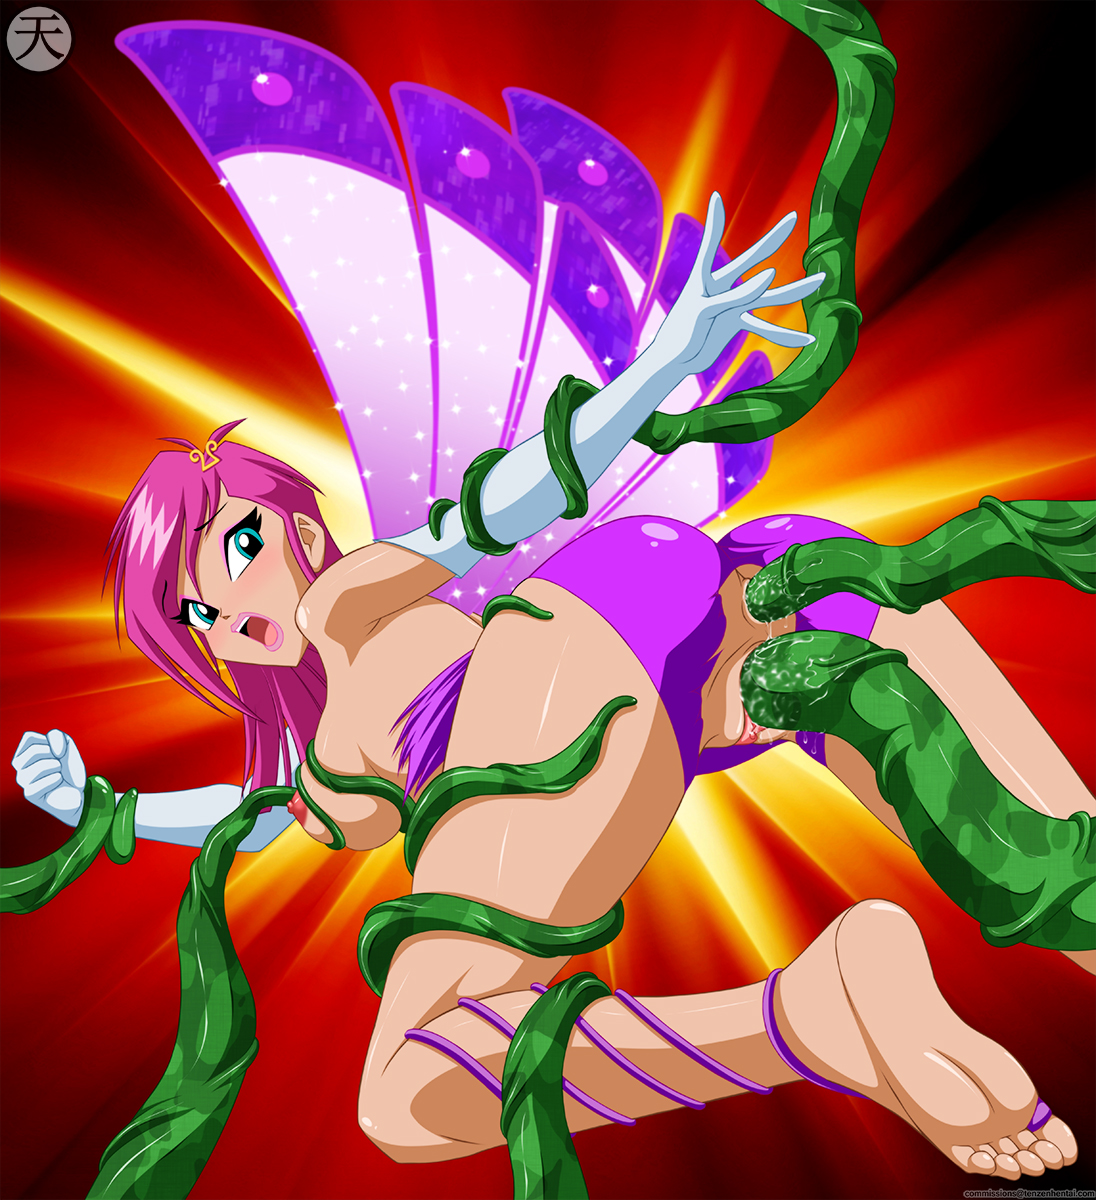 Winx club sex videos downlod frre have